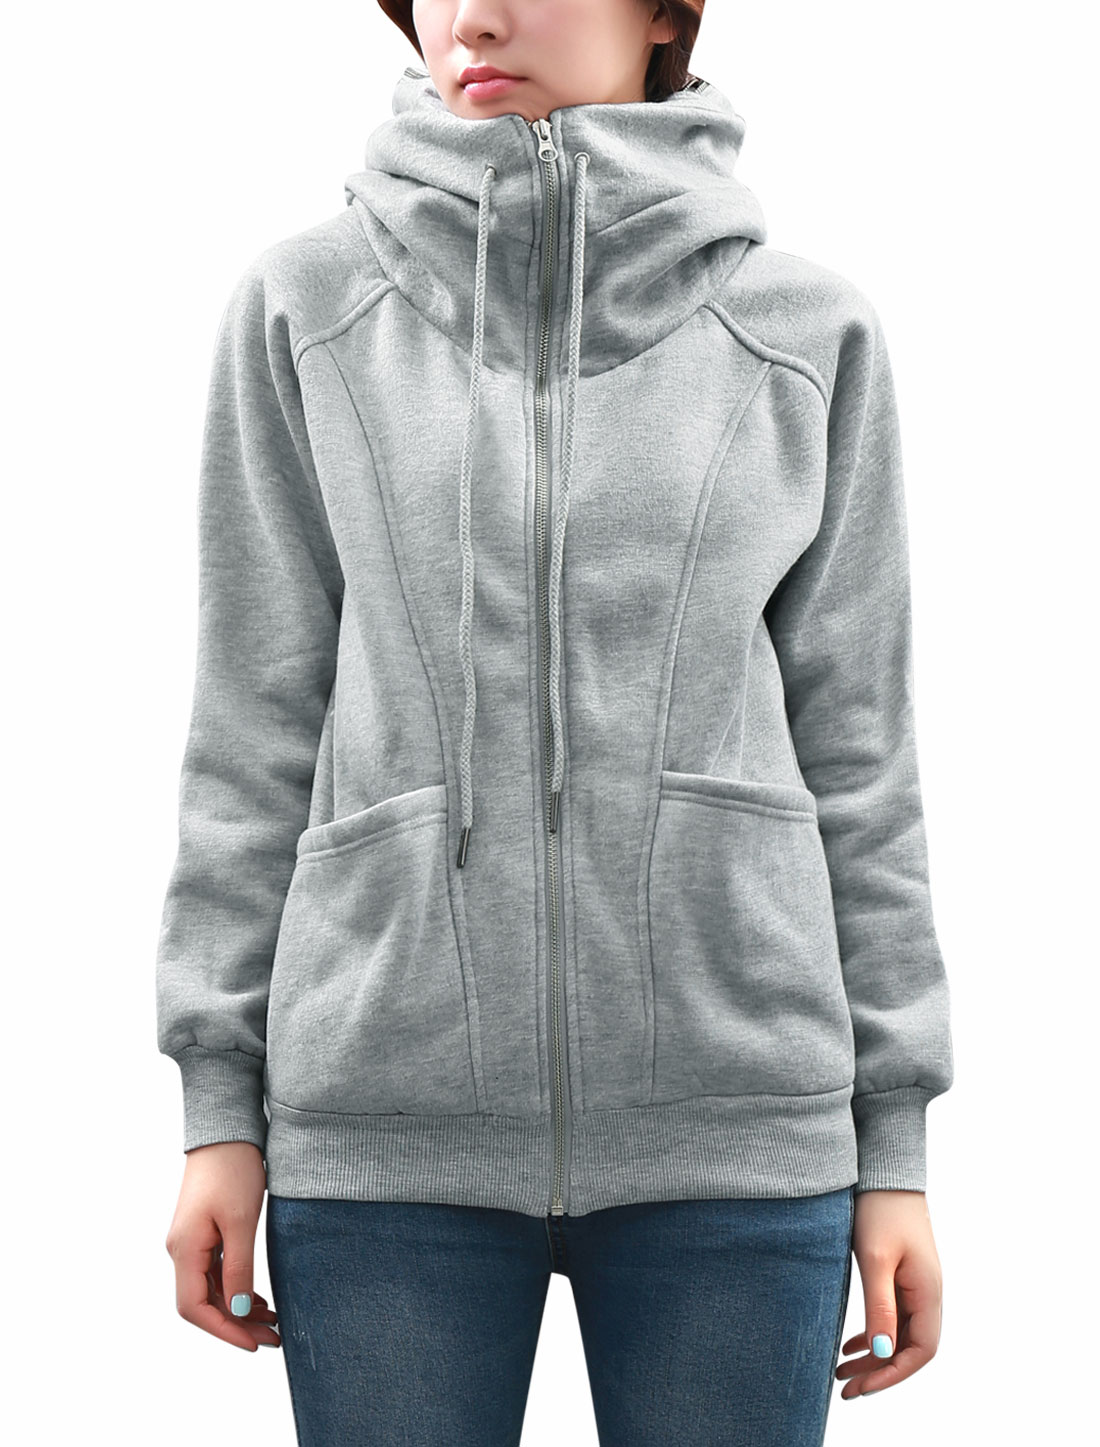 Ladies Chic Hidded Hooded Design Zip-Up Front Light Gray Coat XS